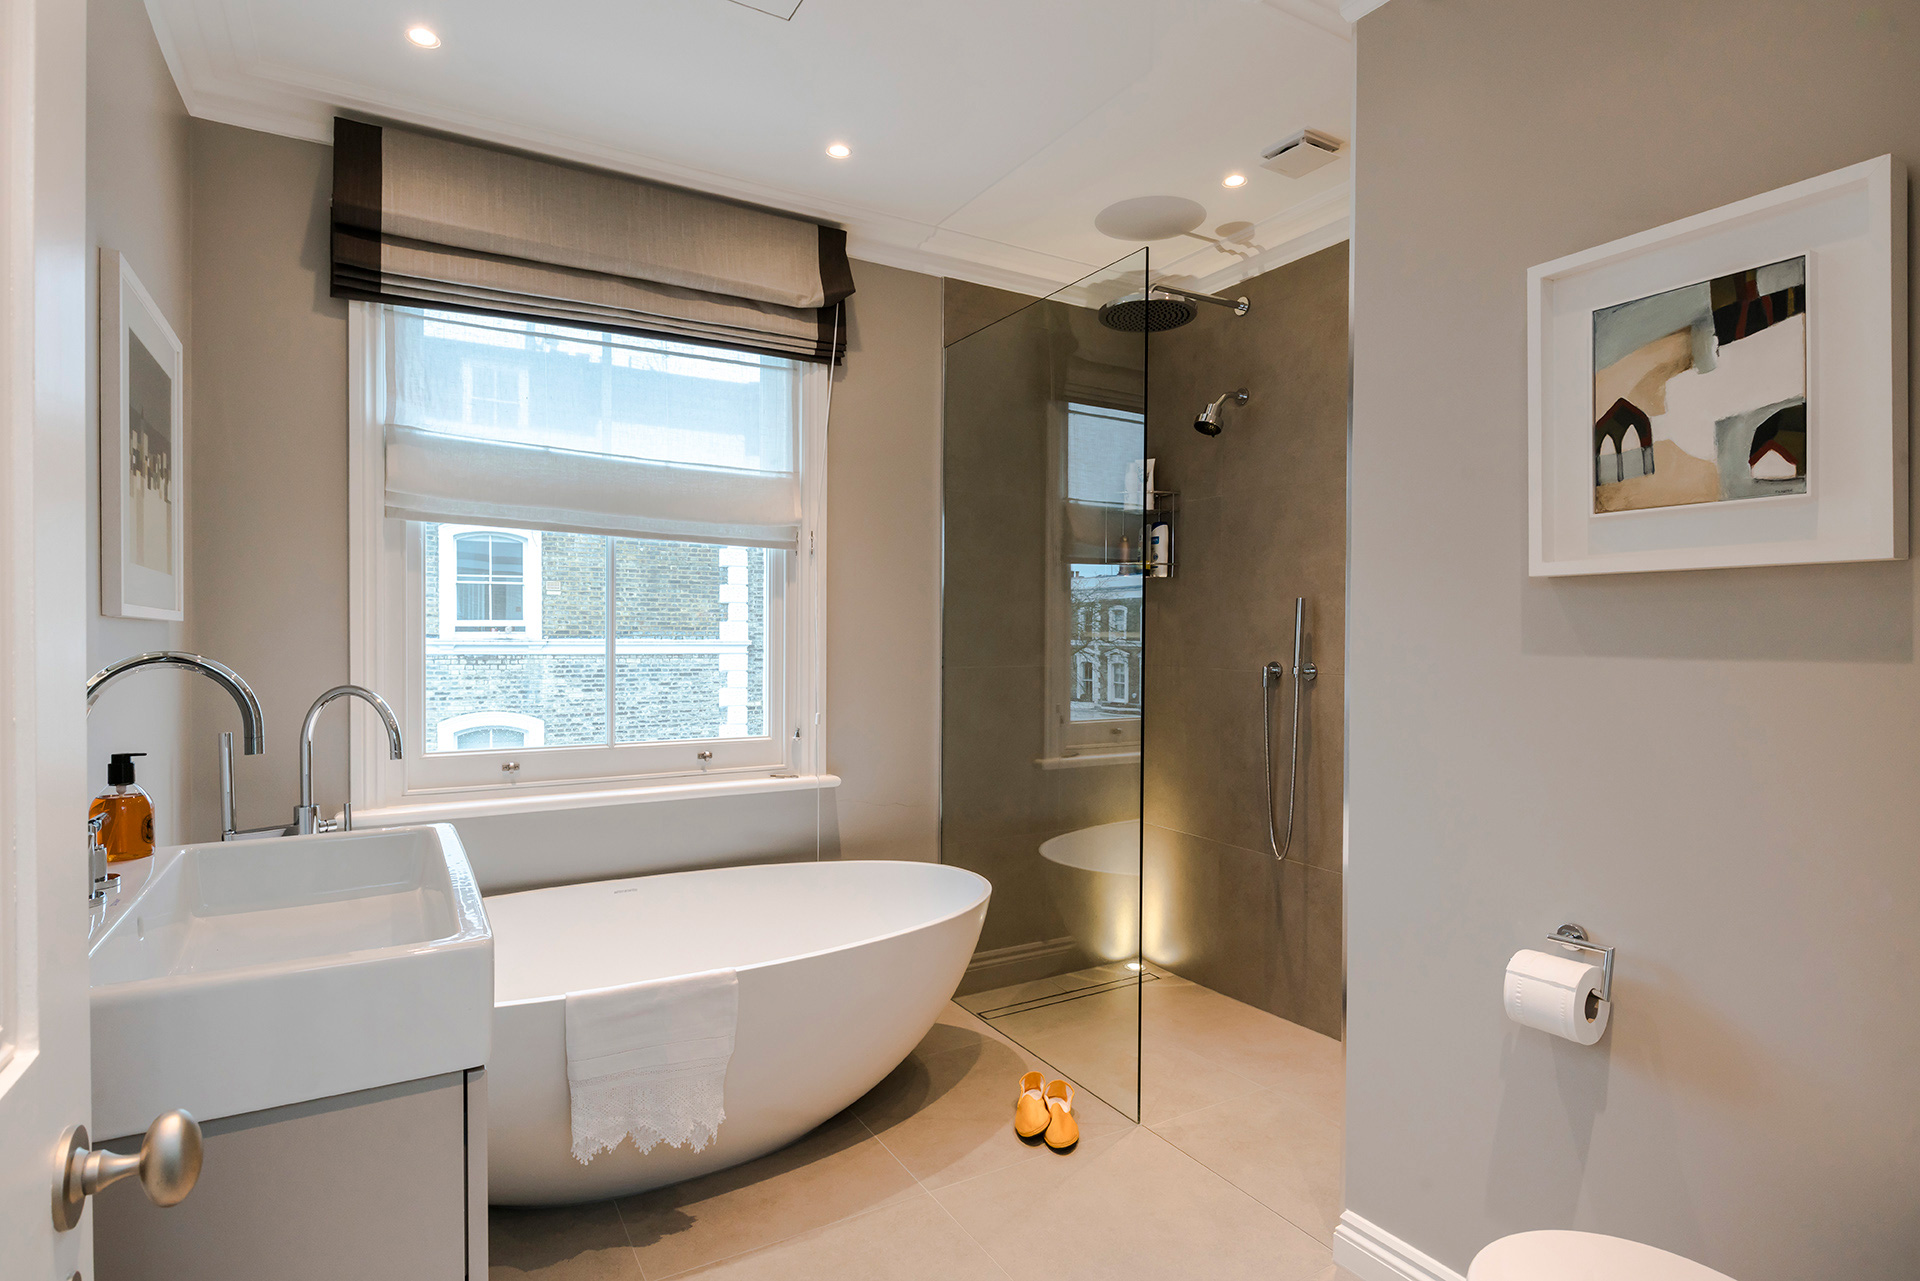 Studio 29 residential architects refurbishment kensington 10